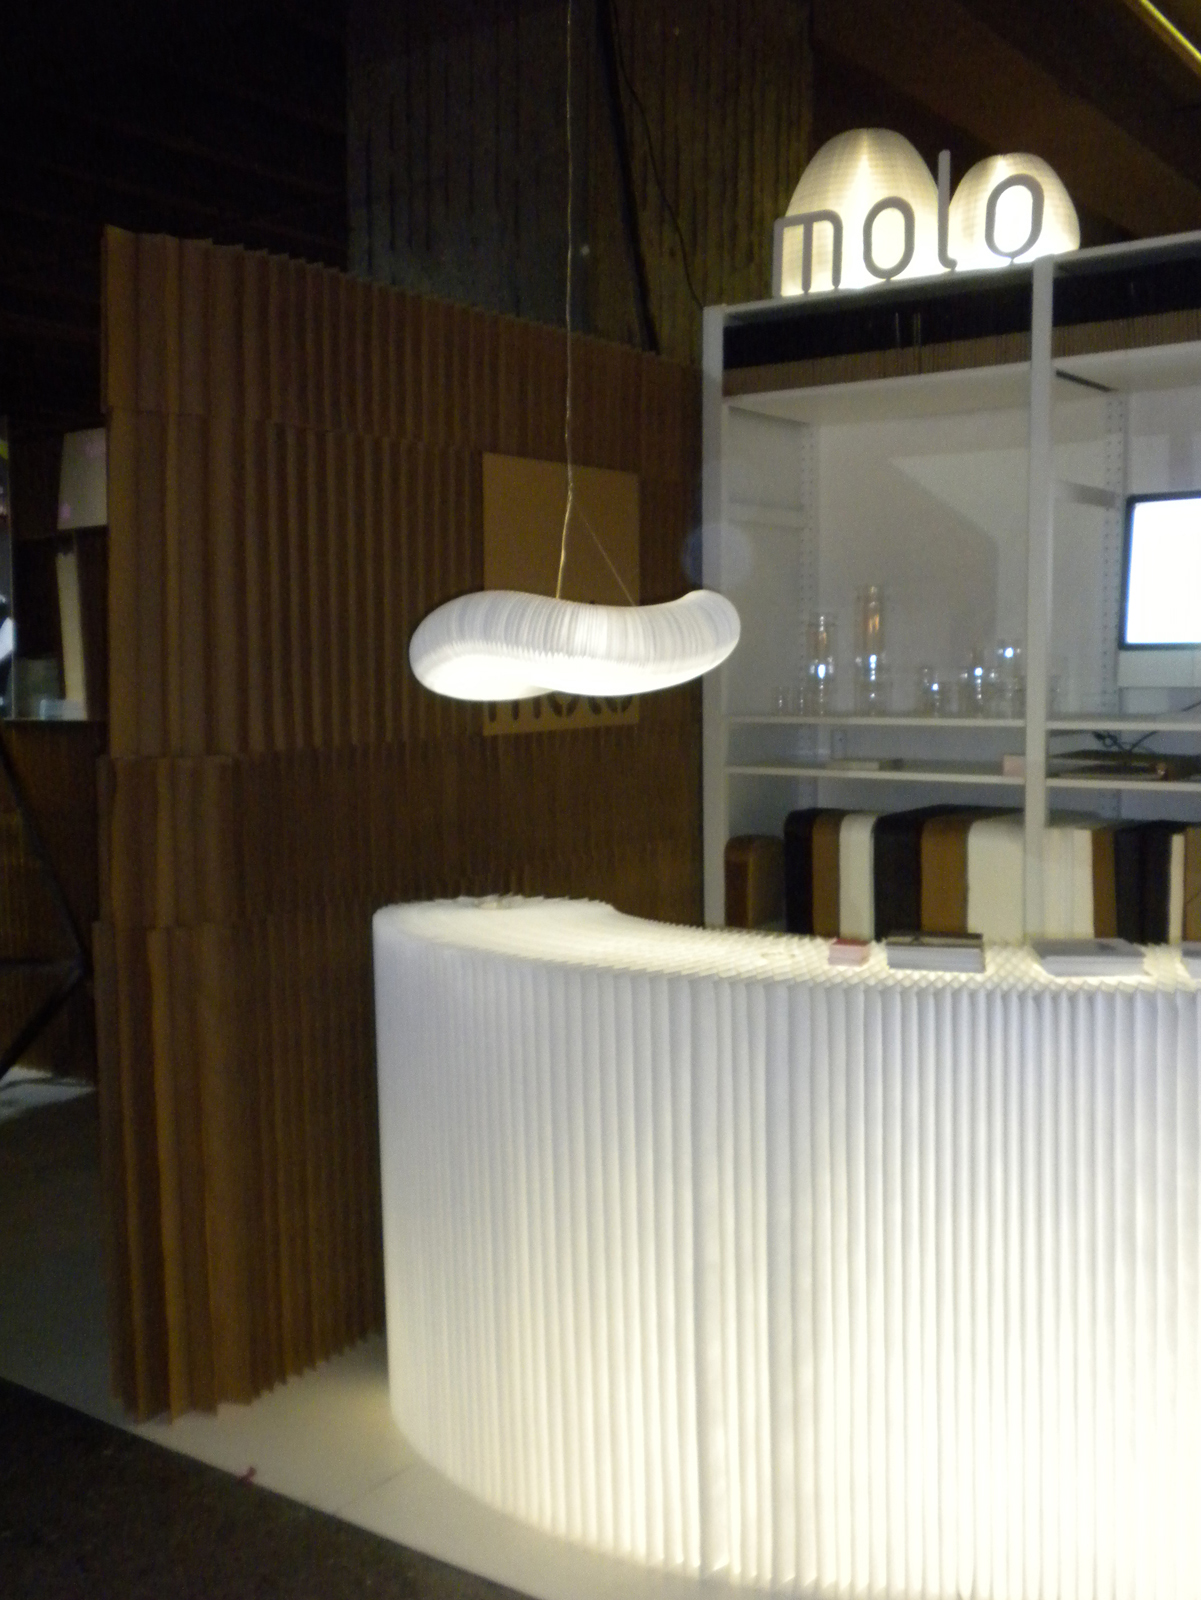 At the Montreal International Interior Design Show, the Softwalls and Softblocks formed the Molo booth as well as the pathway and wall dividers in the sustainability section.